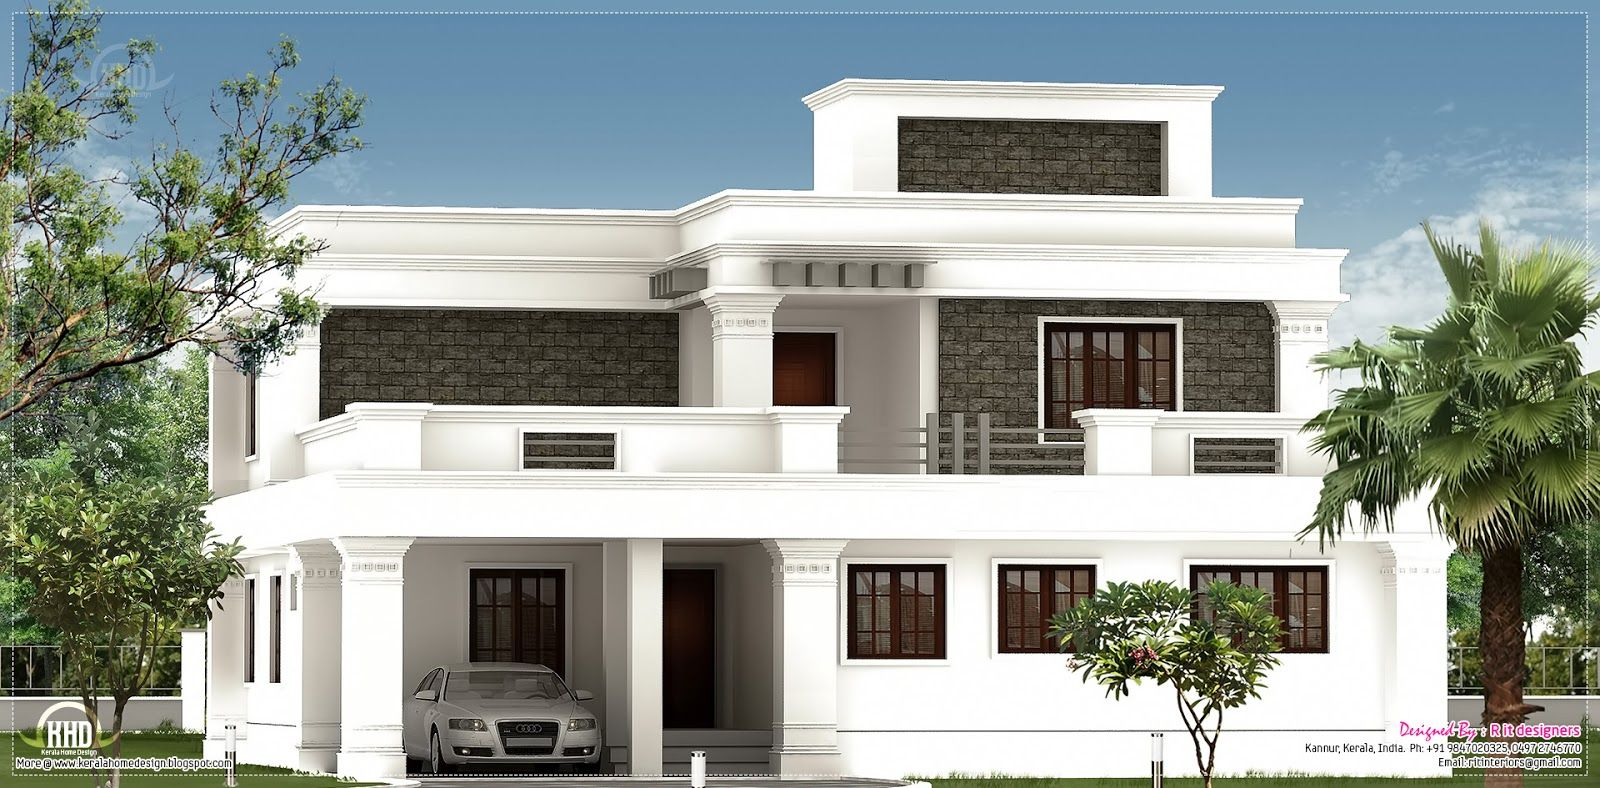 Flat roof homes designs flat roof villa exterior in 2400 Home exterior front design